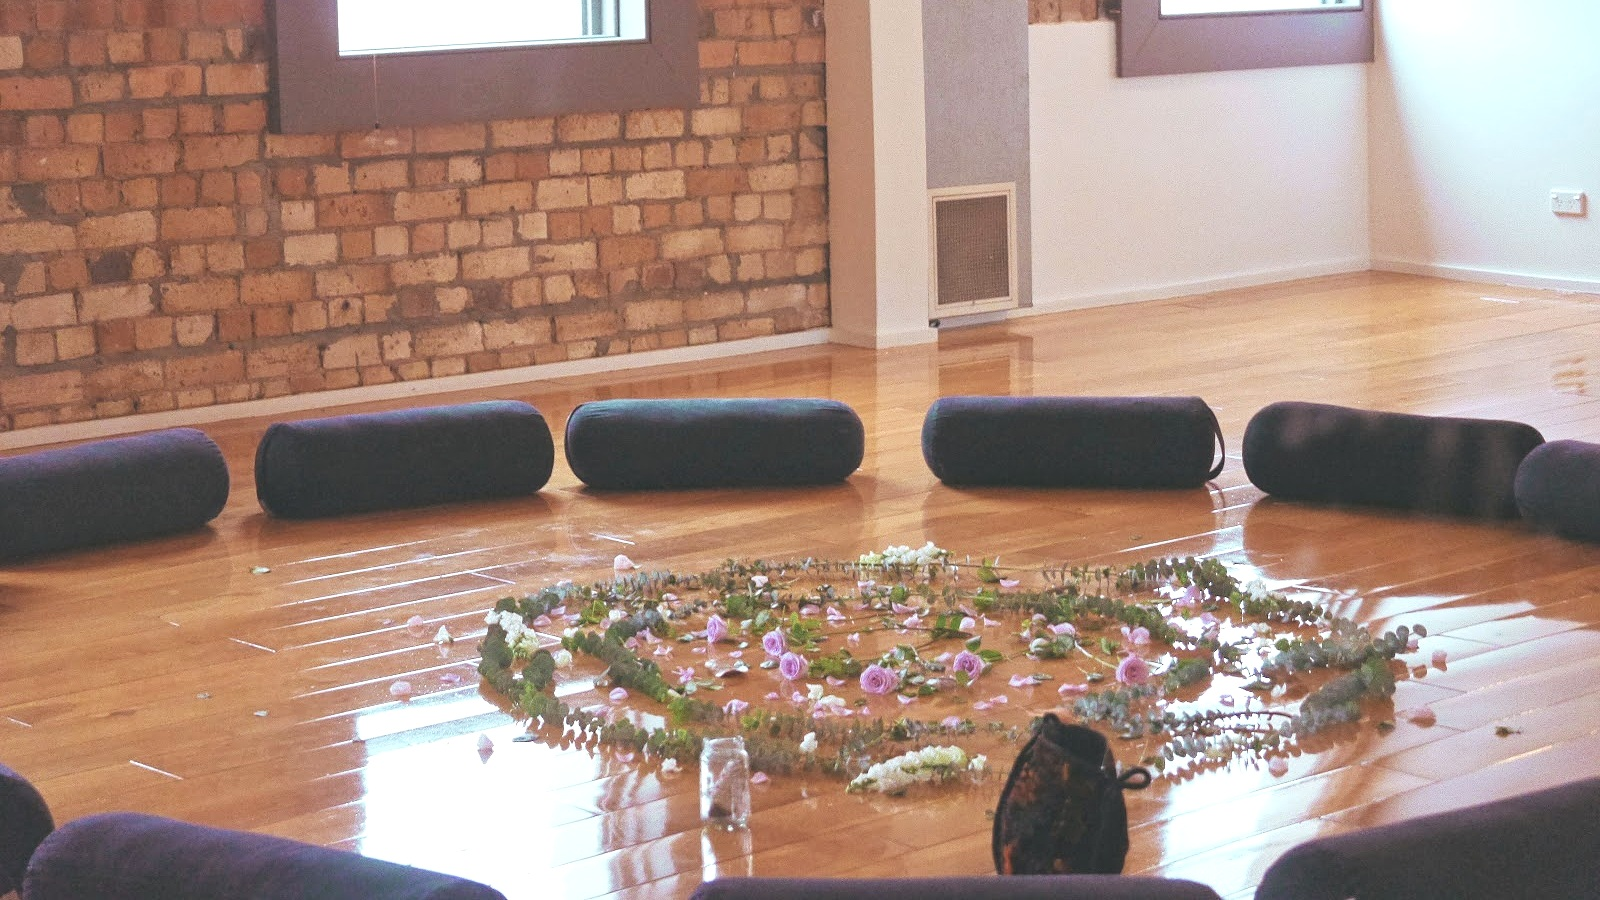 Kaity's beautiful studio for breath-work - mats arranged in the circle around a bunch of wonderful flowers